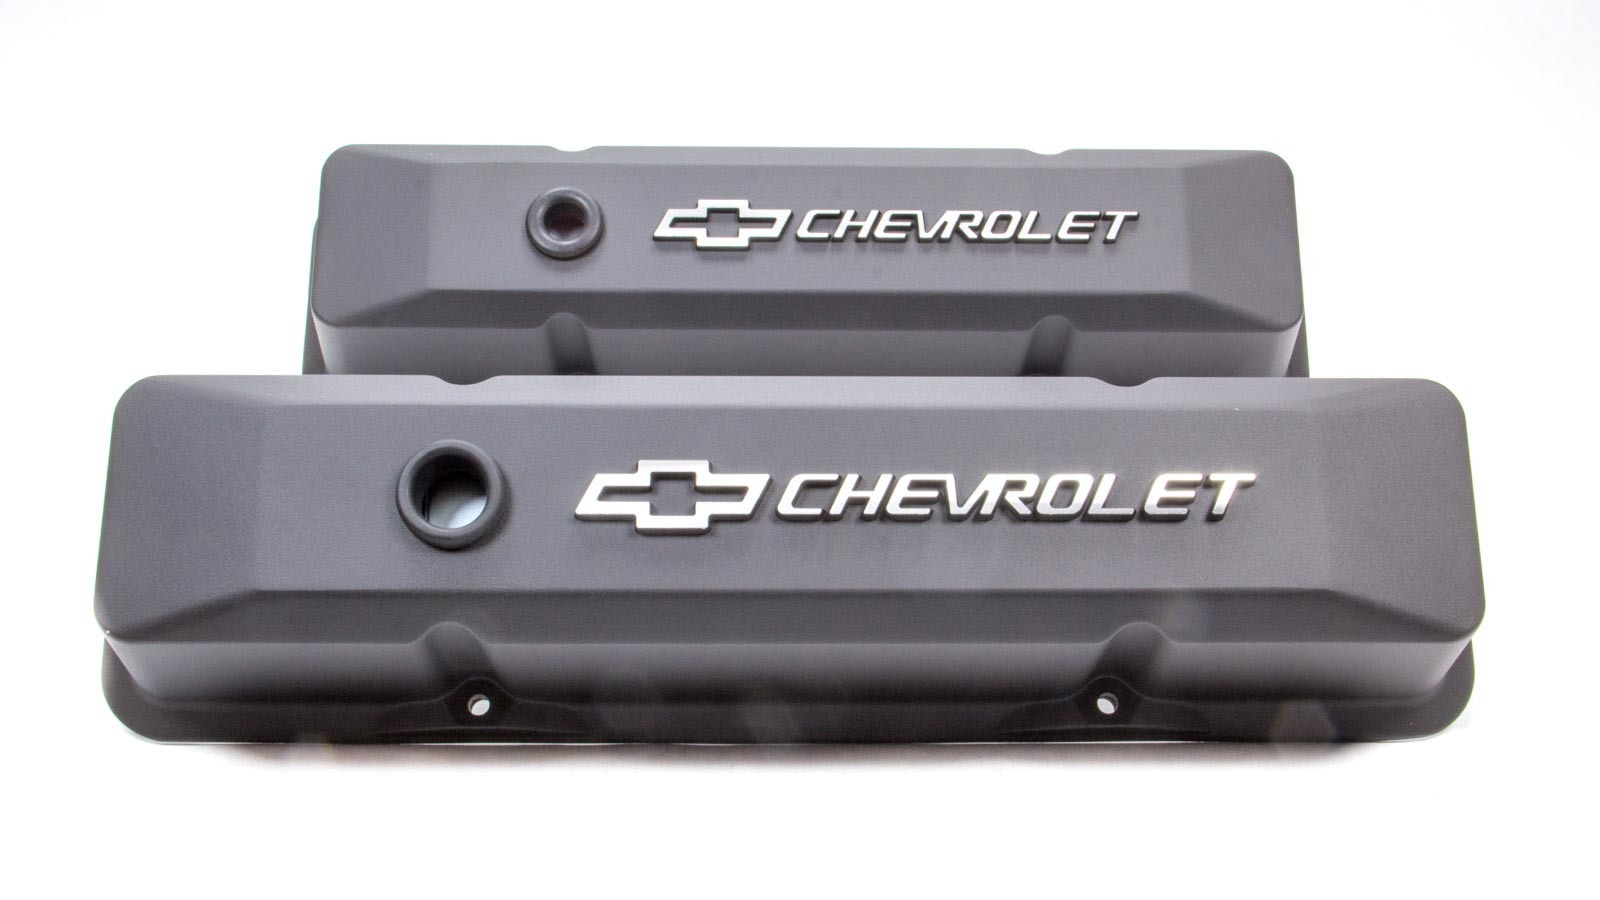 Proform 141-119 Valve Cover, Die-Cast, Tall, Baffled, Breather Hole, Raised Chevrolet Bowtie Logo, Aluminum, Black Crinkle, Small Block Chevy, Pair